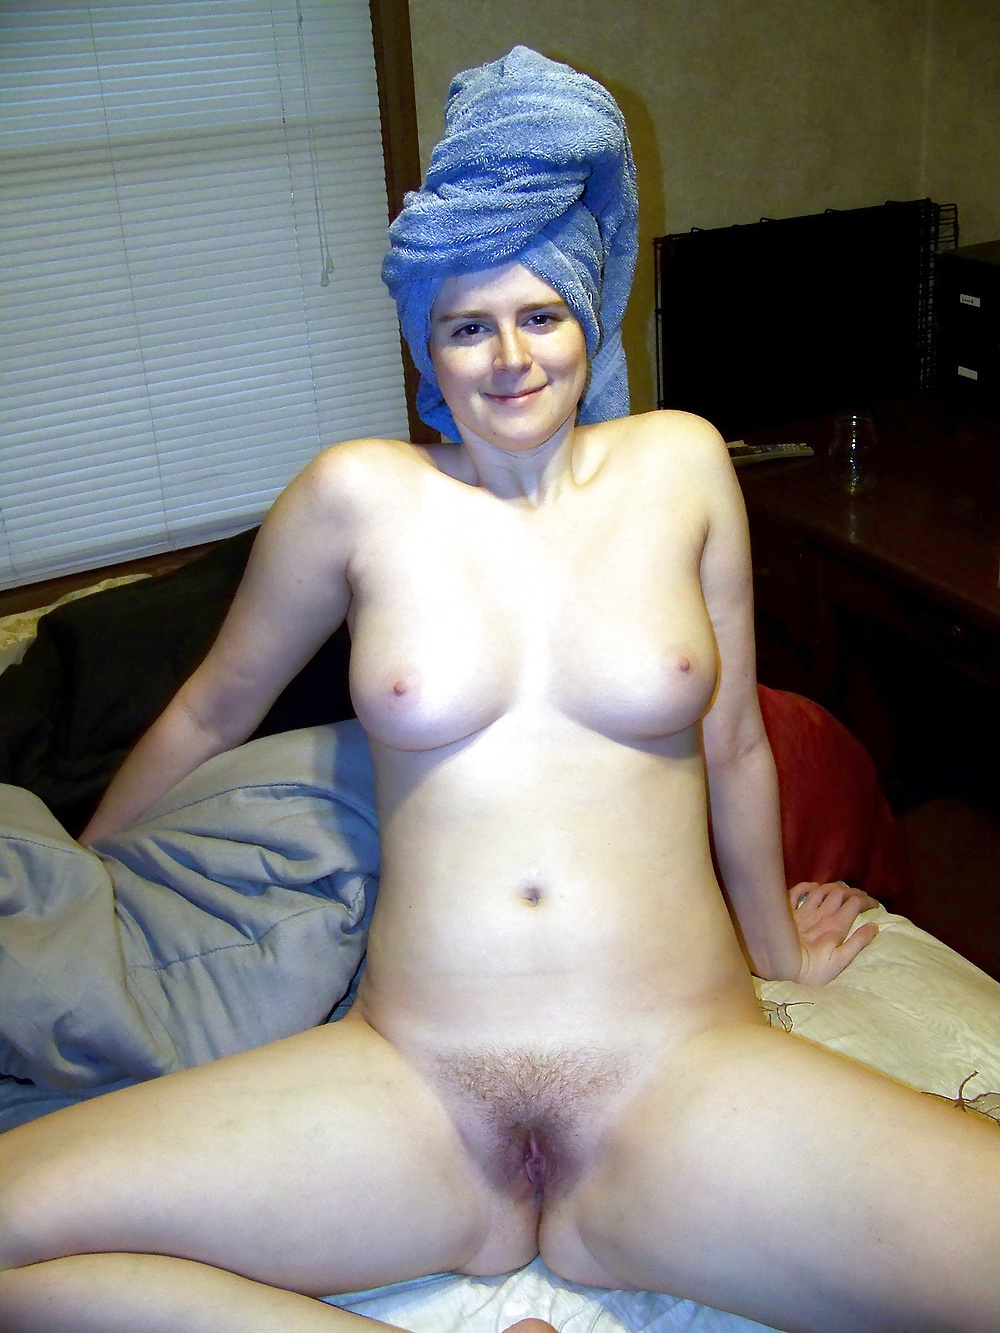 wife naked Reddit